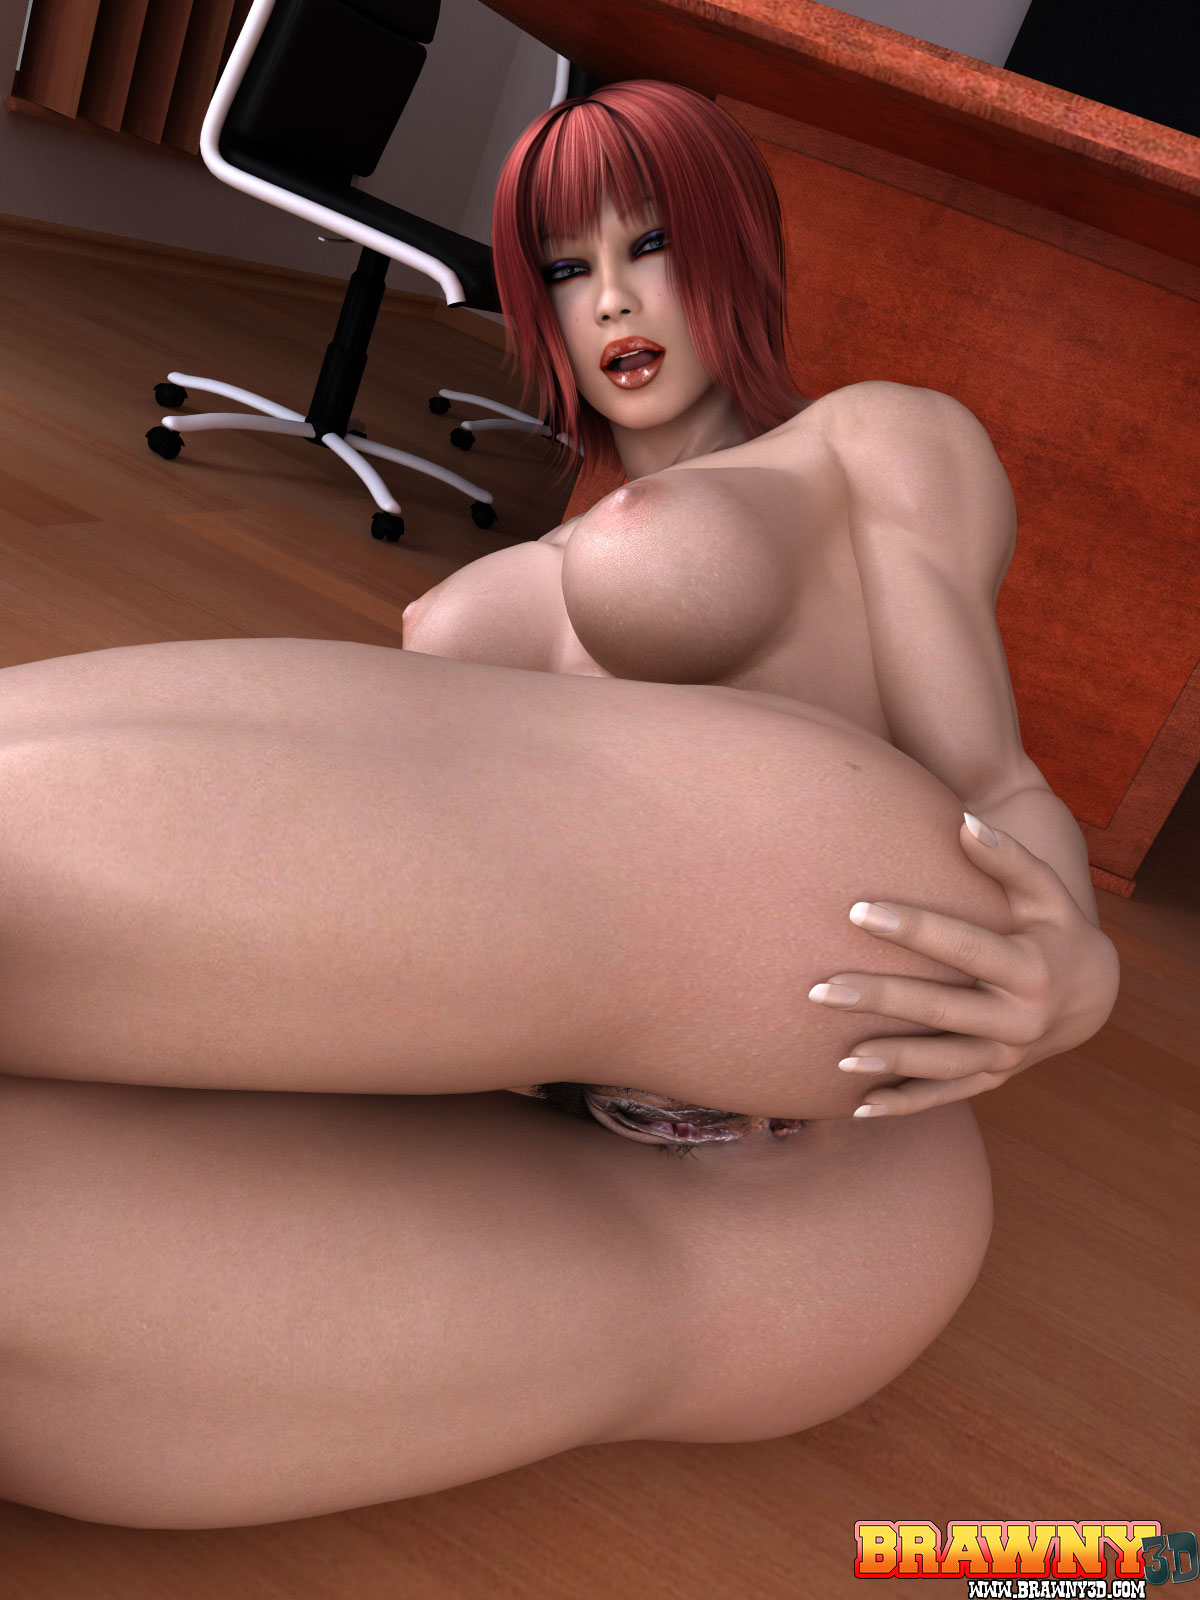 Cartoon hd and 3d nude image adult gallery